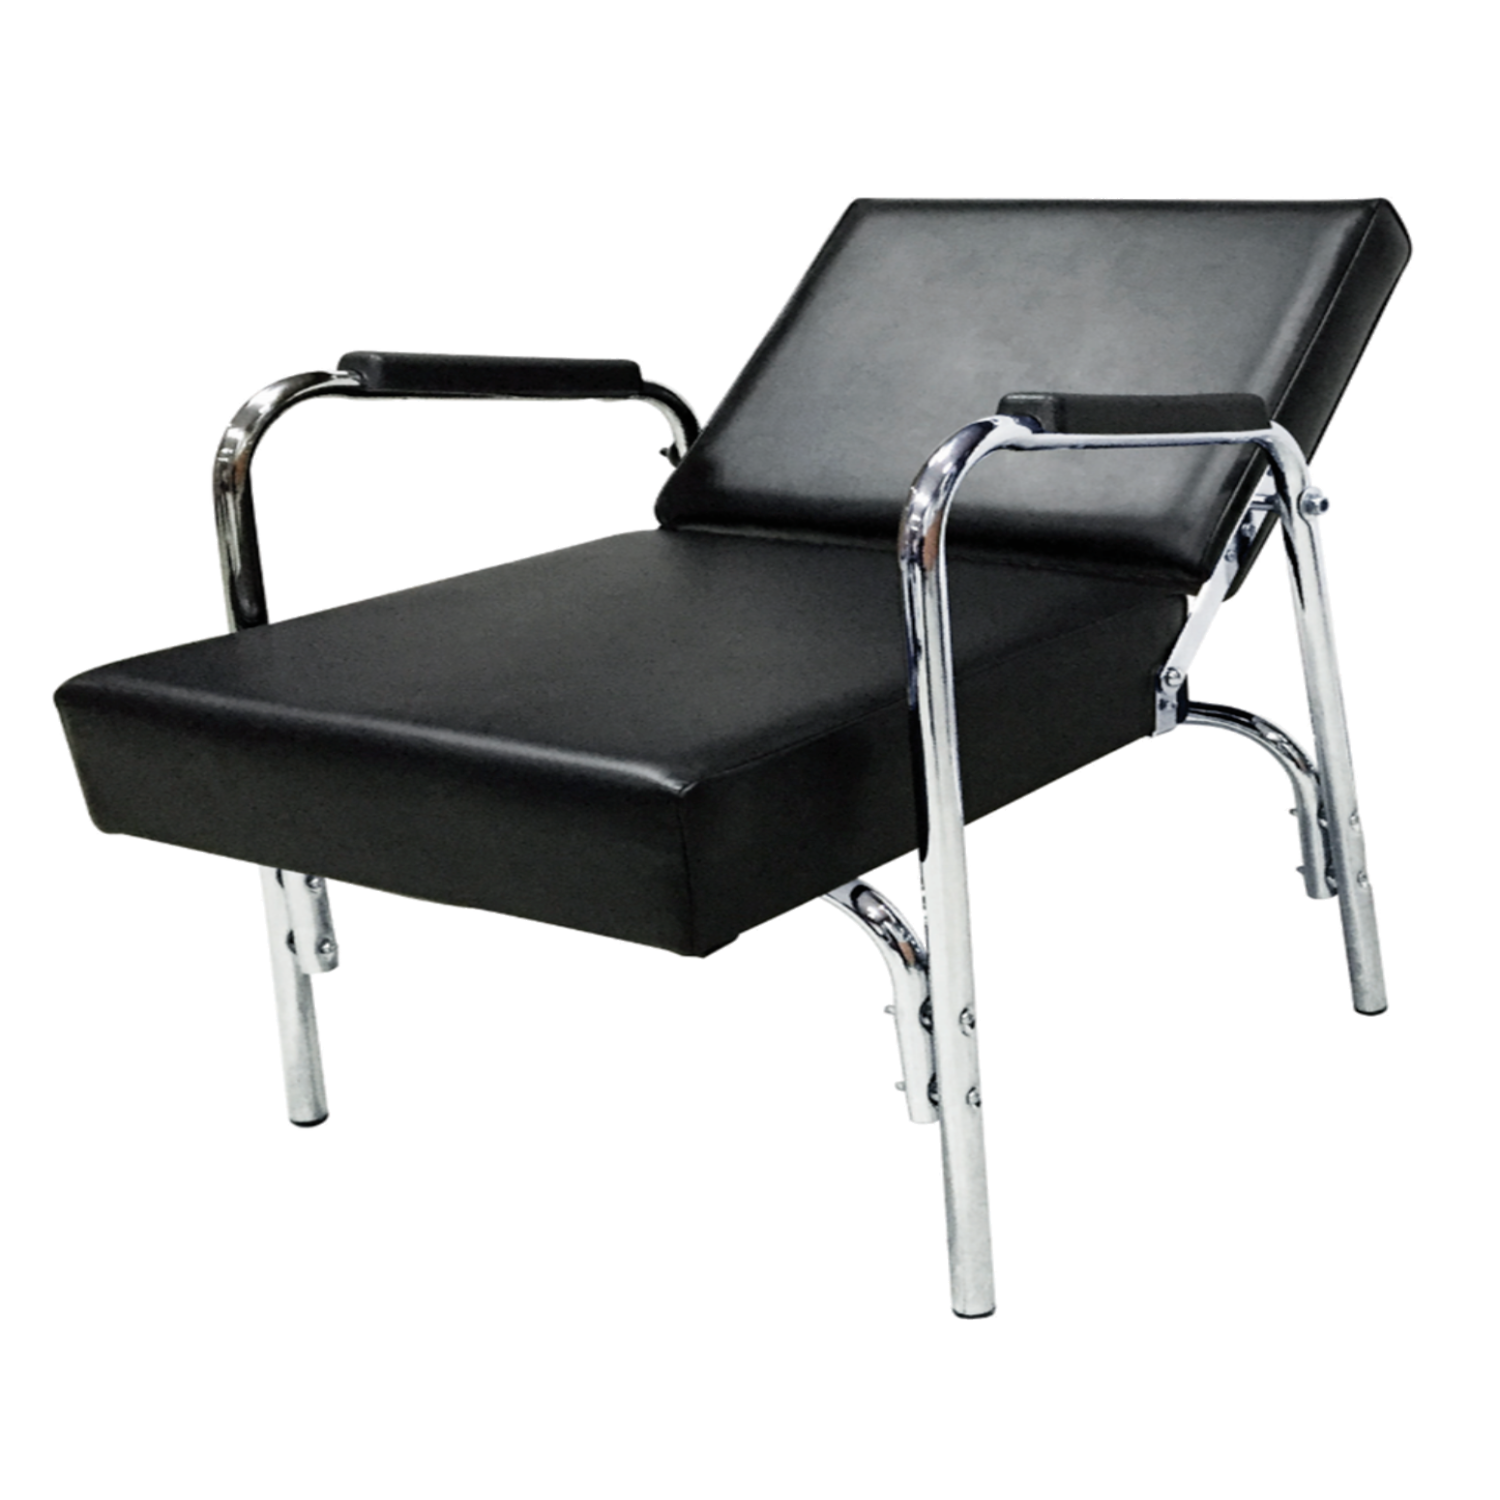 sc 1 st  Sally Beauty : reclining spa chair - islam-shia.org